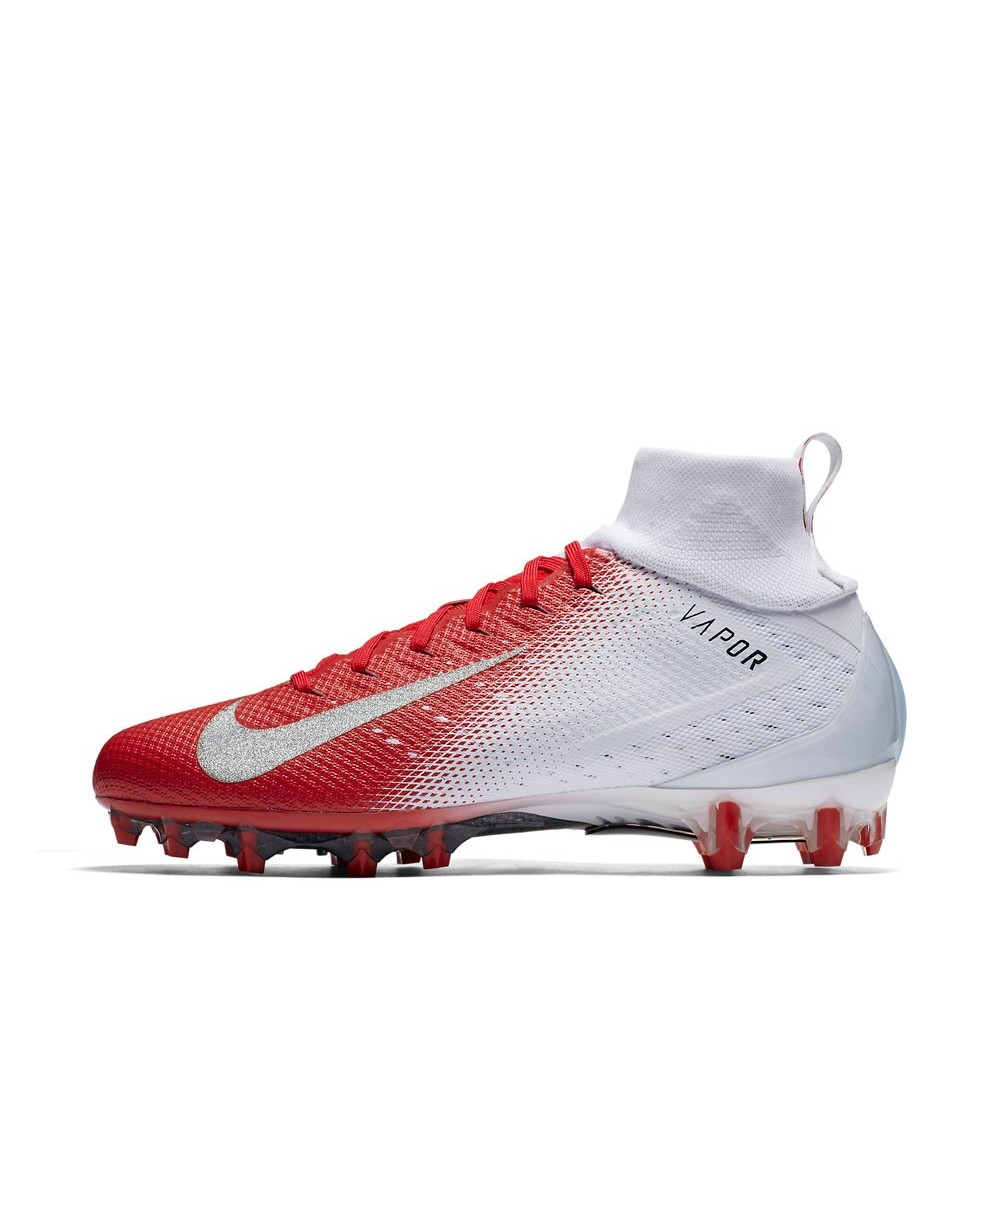 64f958c6d8ef9 Nike - American Football Cleats for men, model Vapor Untouchable 3 Pro,  colour White/University Red/Light Crimson/Metallic Silver